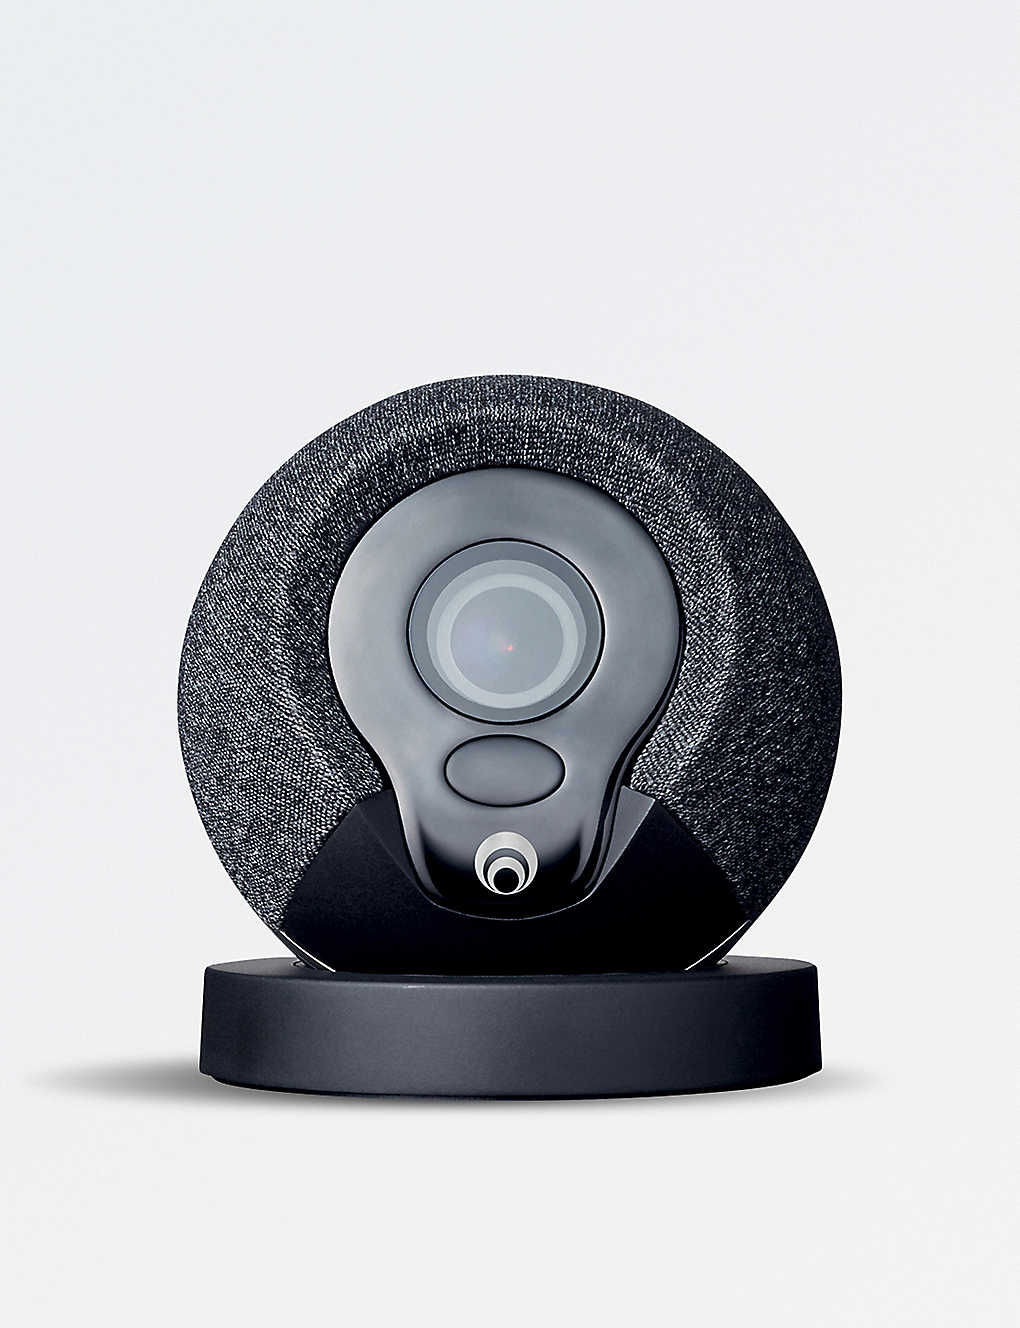 COCOON: Cocoon Home Security Monitor System